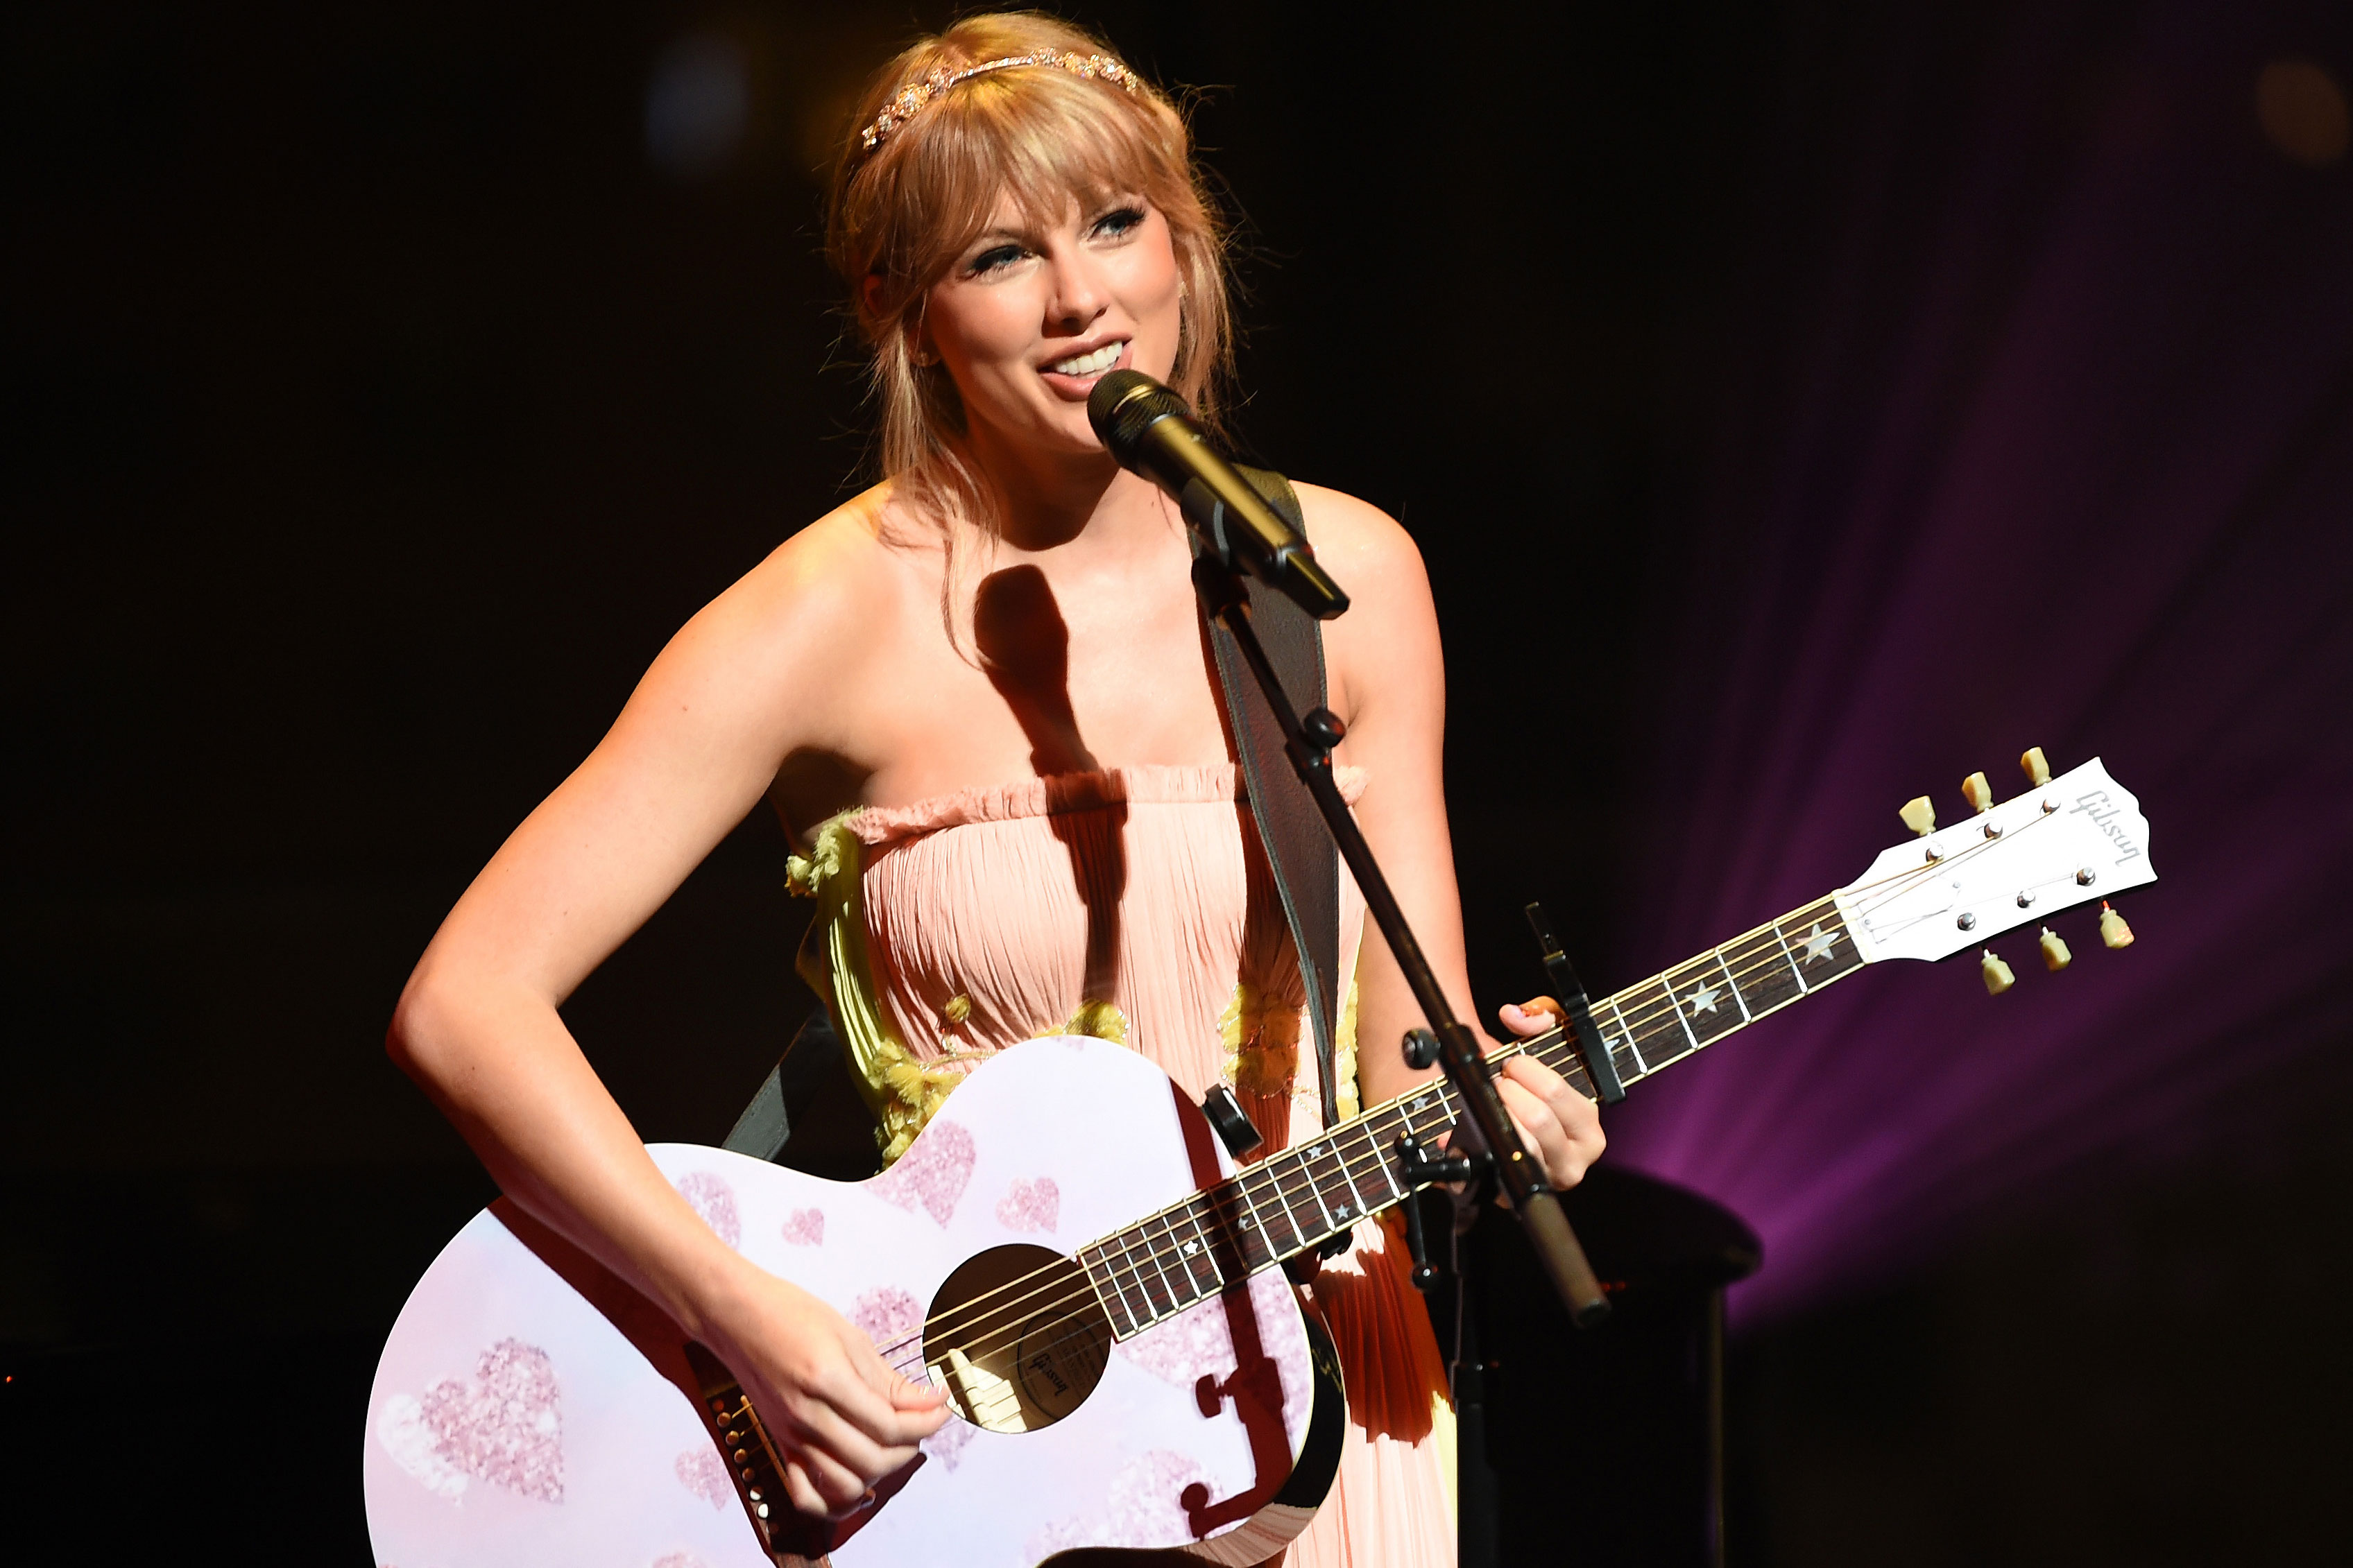 Taylor Swift S Lover Youtube Live Stream When And How To Watch Decider